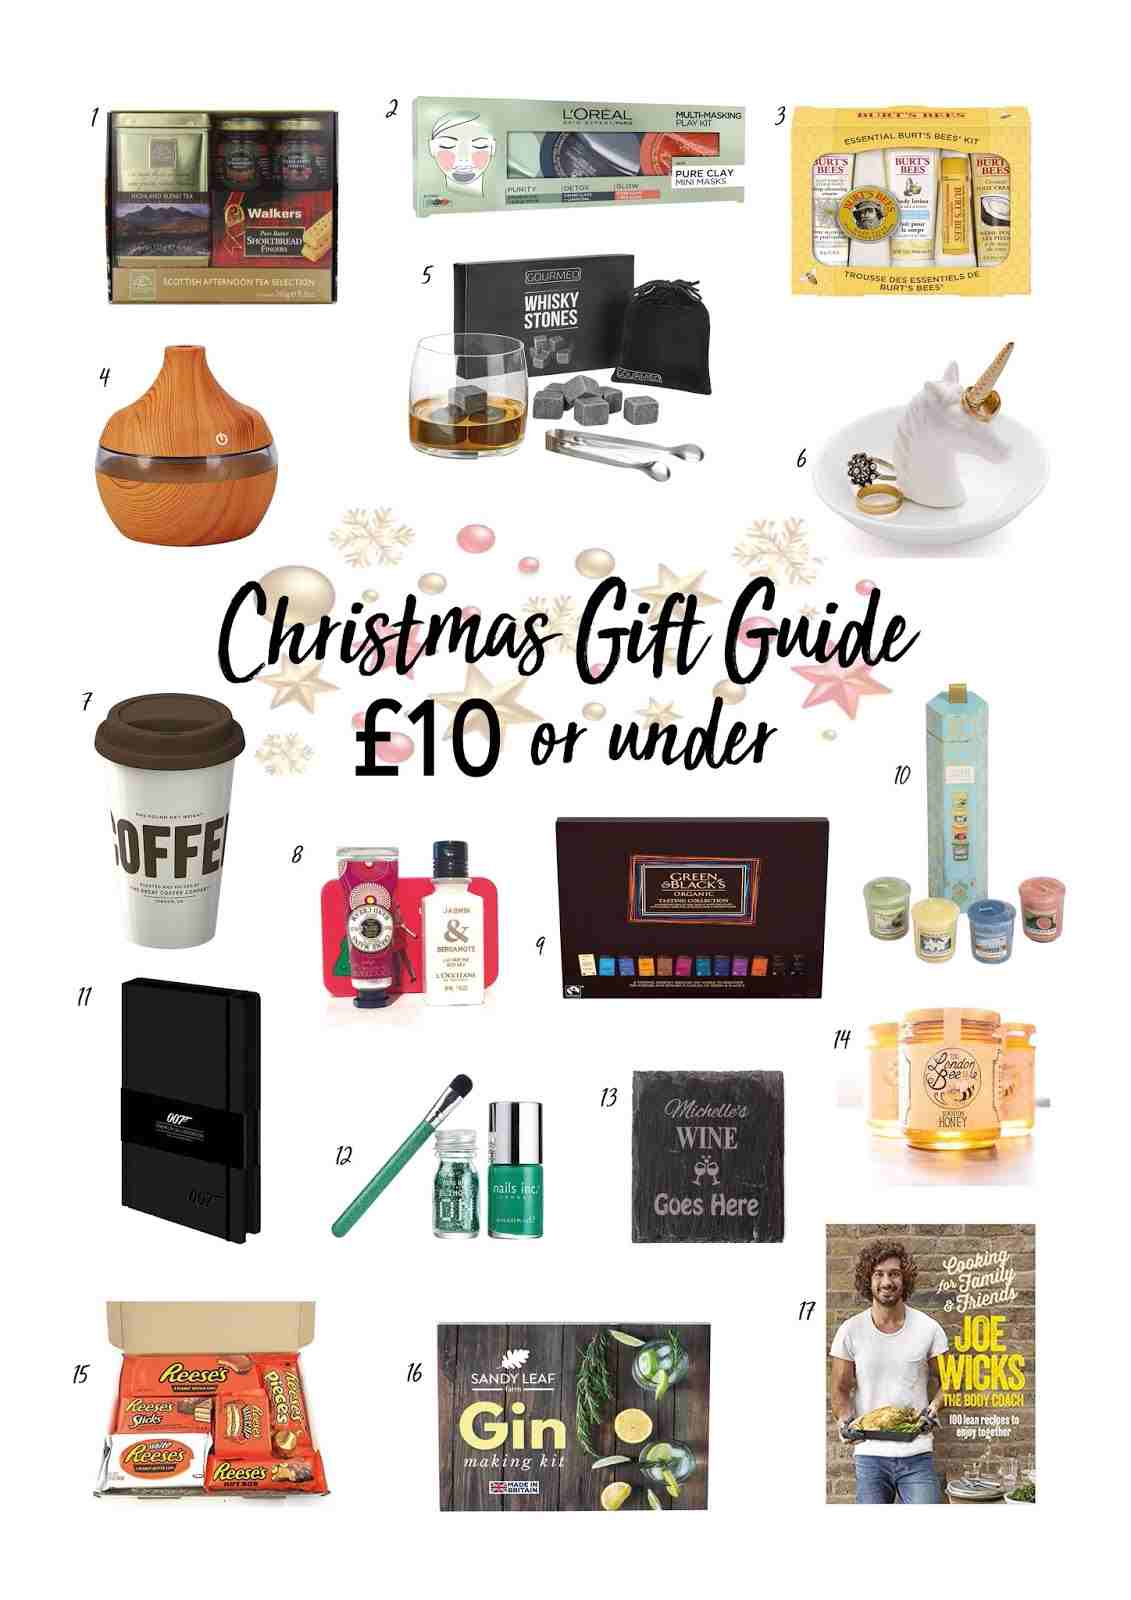 Gift Guide: Christmas presents for £10 or under